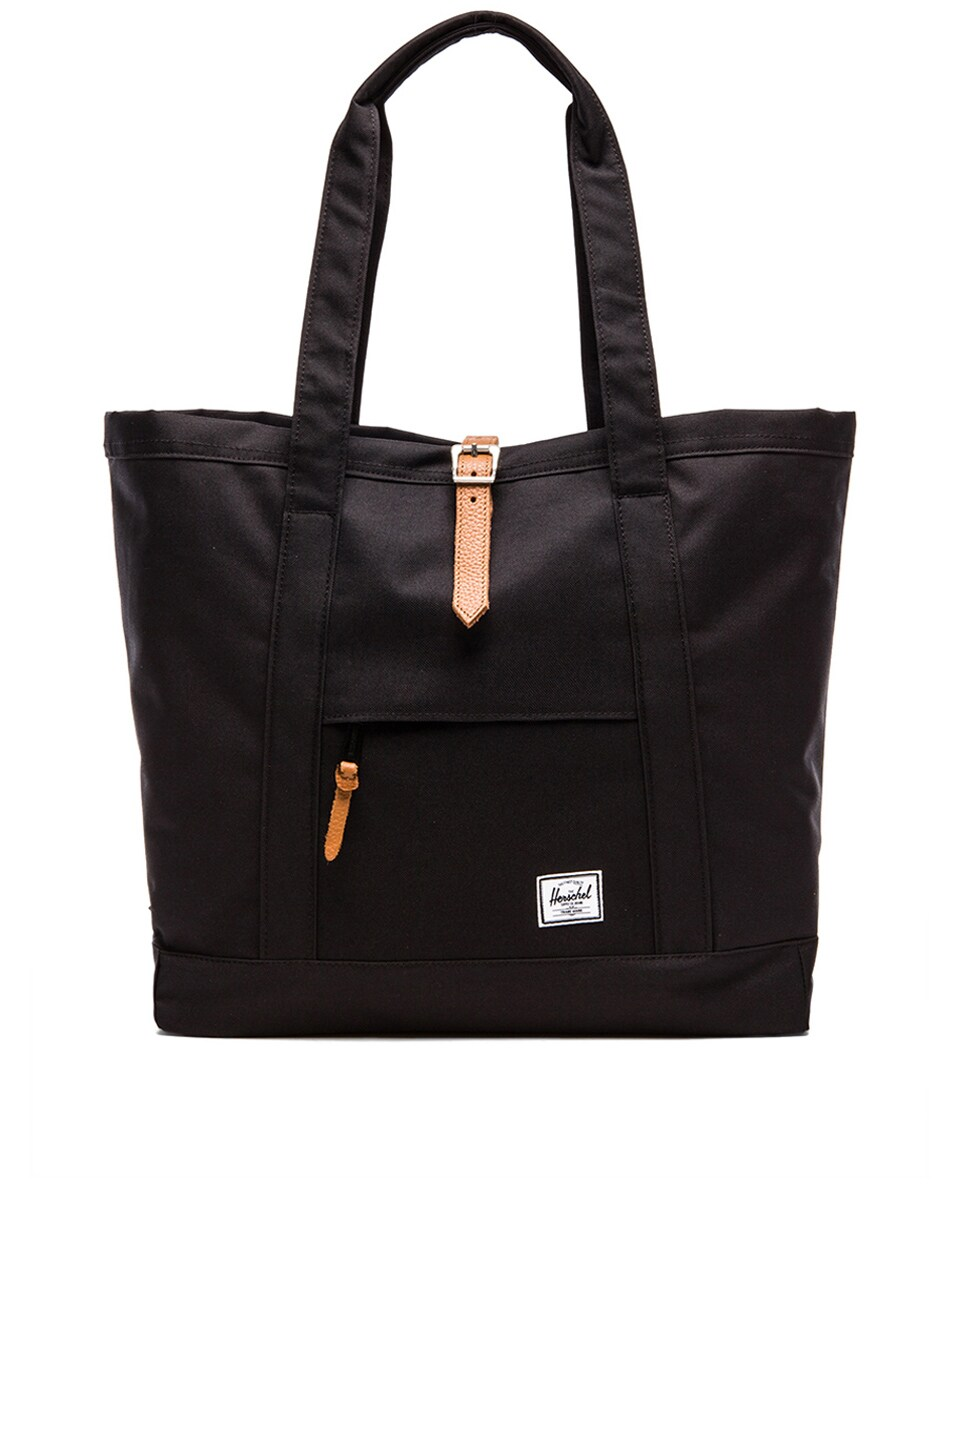 Herschel Supply Co. Market XL in Black